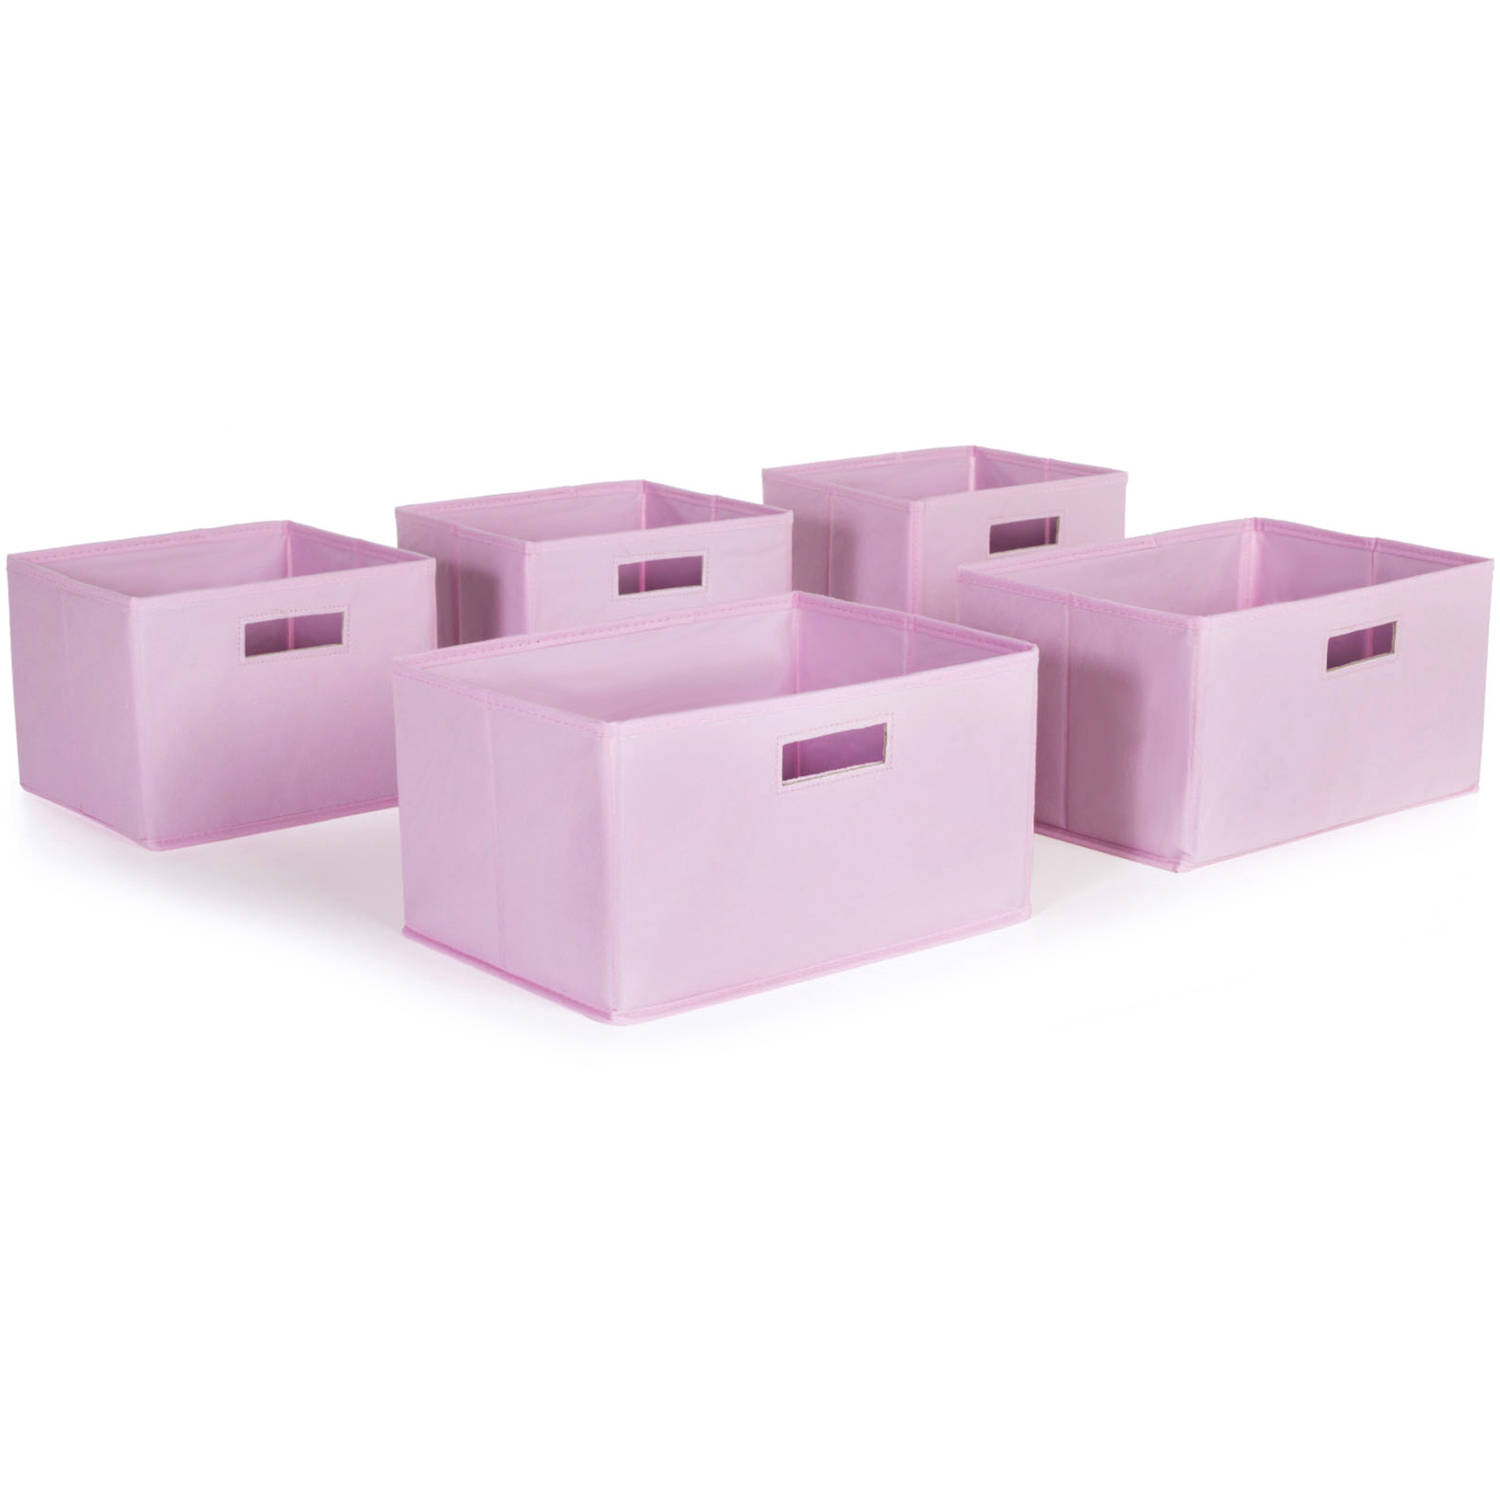 Pink Storage Bins, Set of 5 by Guidecraft